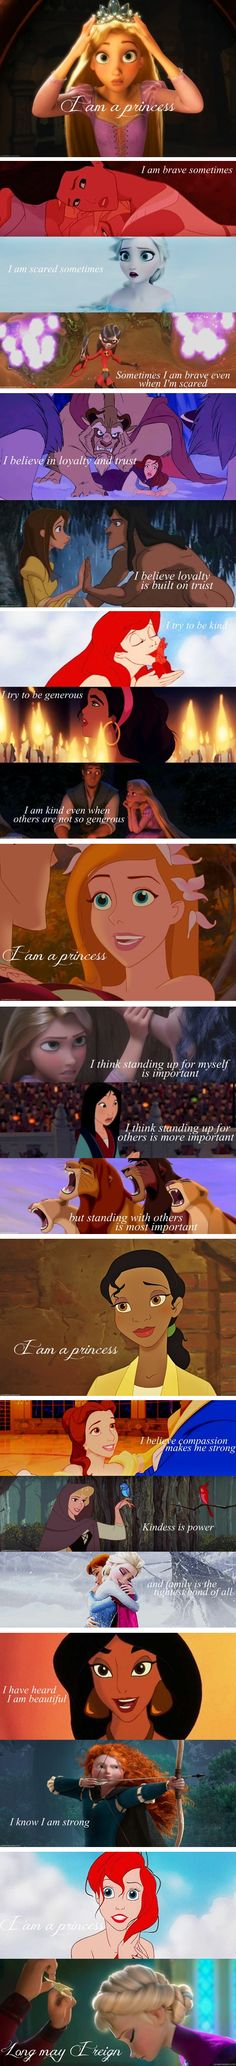 This is the best, most powerful and inspiring message that Disney or anyone has ever said, in my opinion. I think this applies for anyone, not just girls. And if people lived with this motto, I think the world would be every bit as amazing as a Disney world.